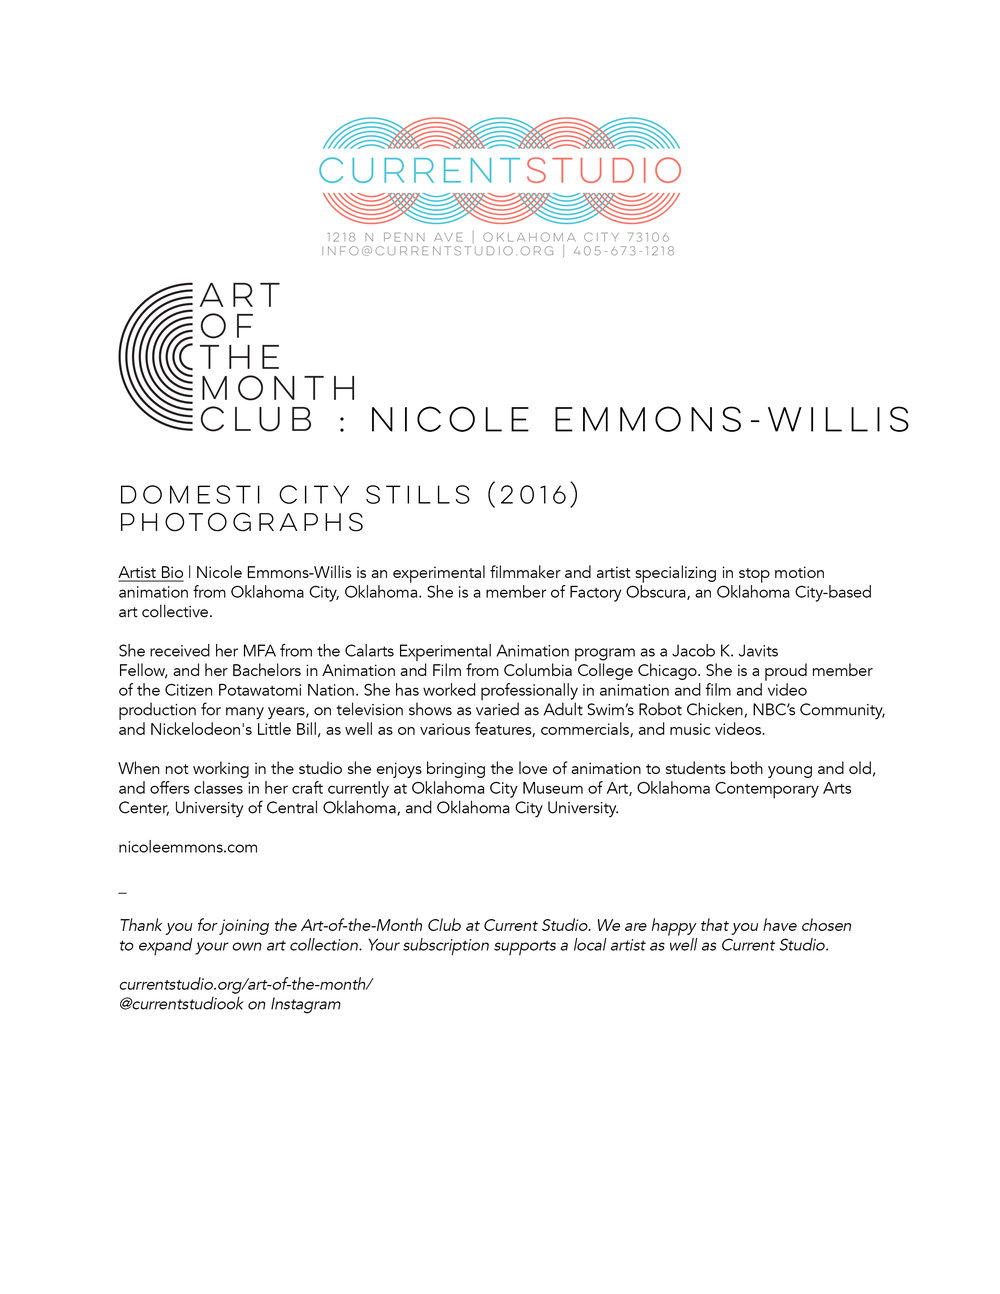 art of the month artist sheet - nicole emmons willis.jpg